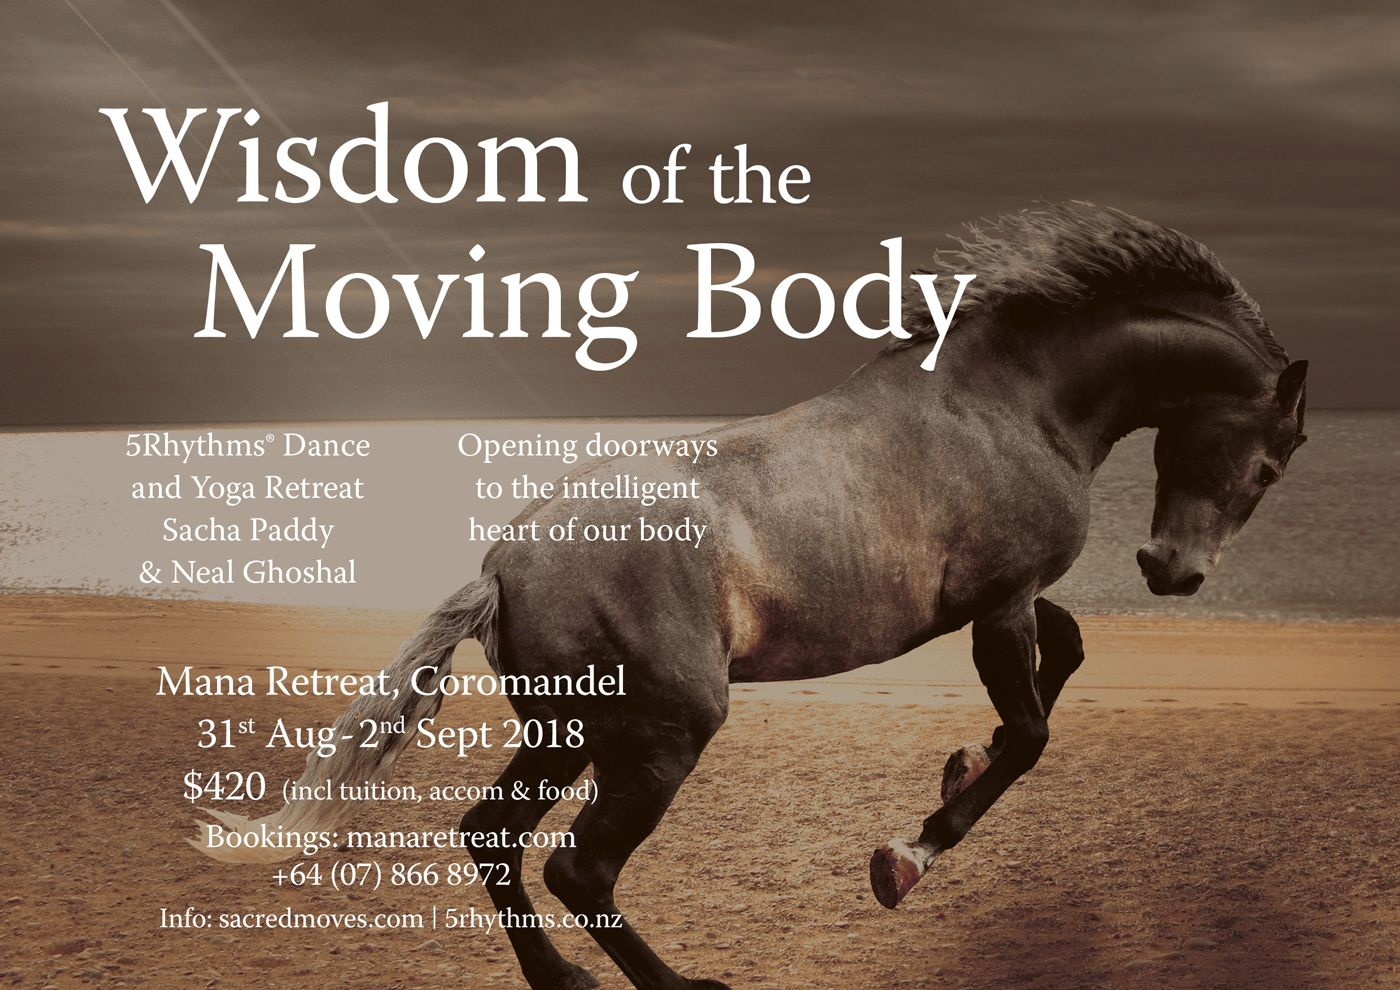 Wisdom of the Moving Body - a weekend retreat with Sacha Paddy and Neal Ghoshal - 5Rhythms Dance and Yoga